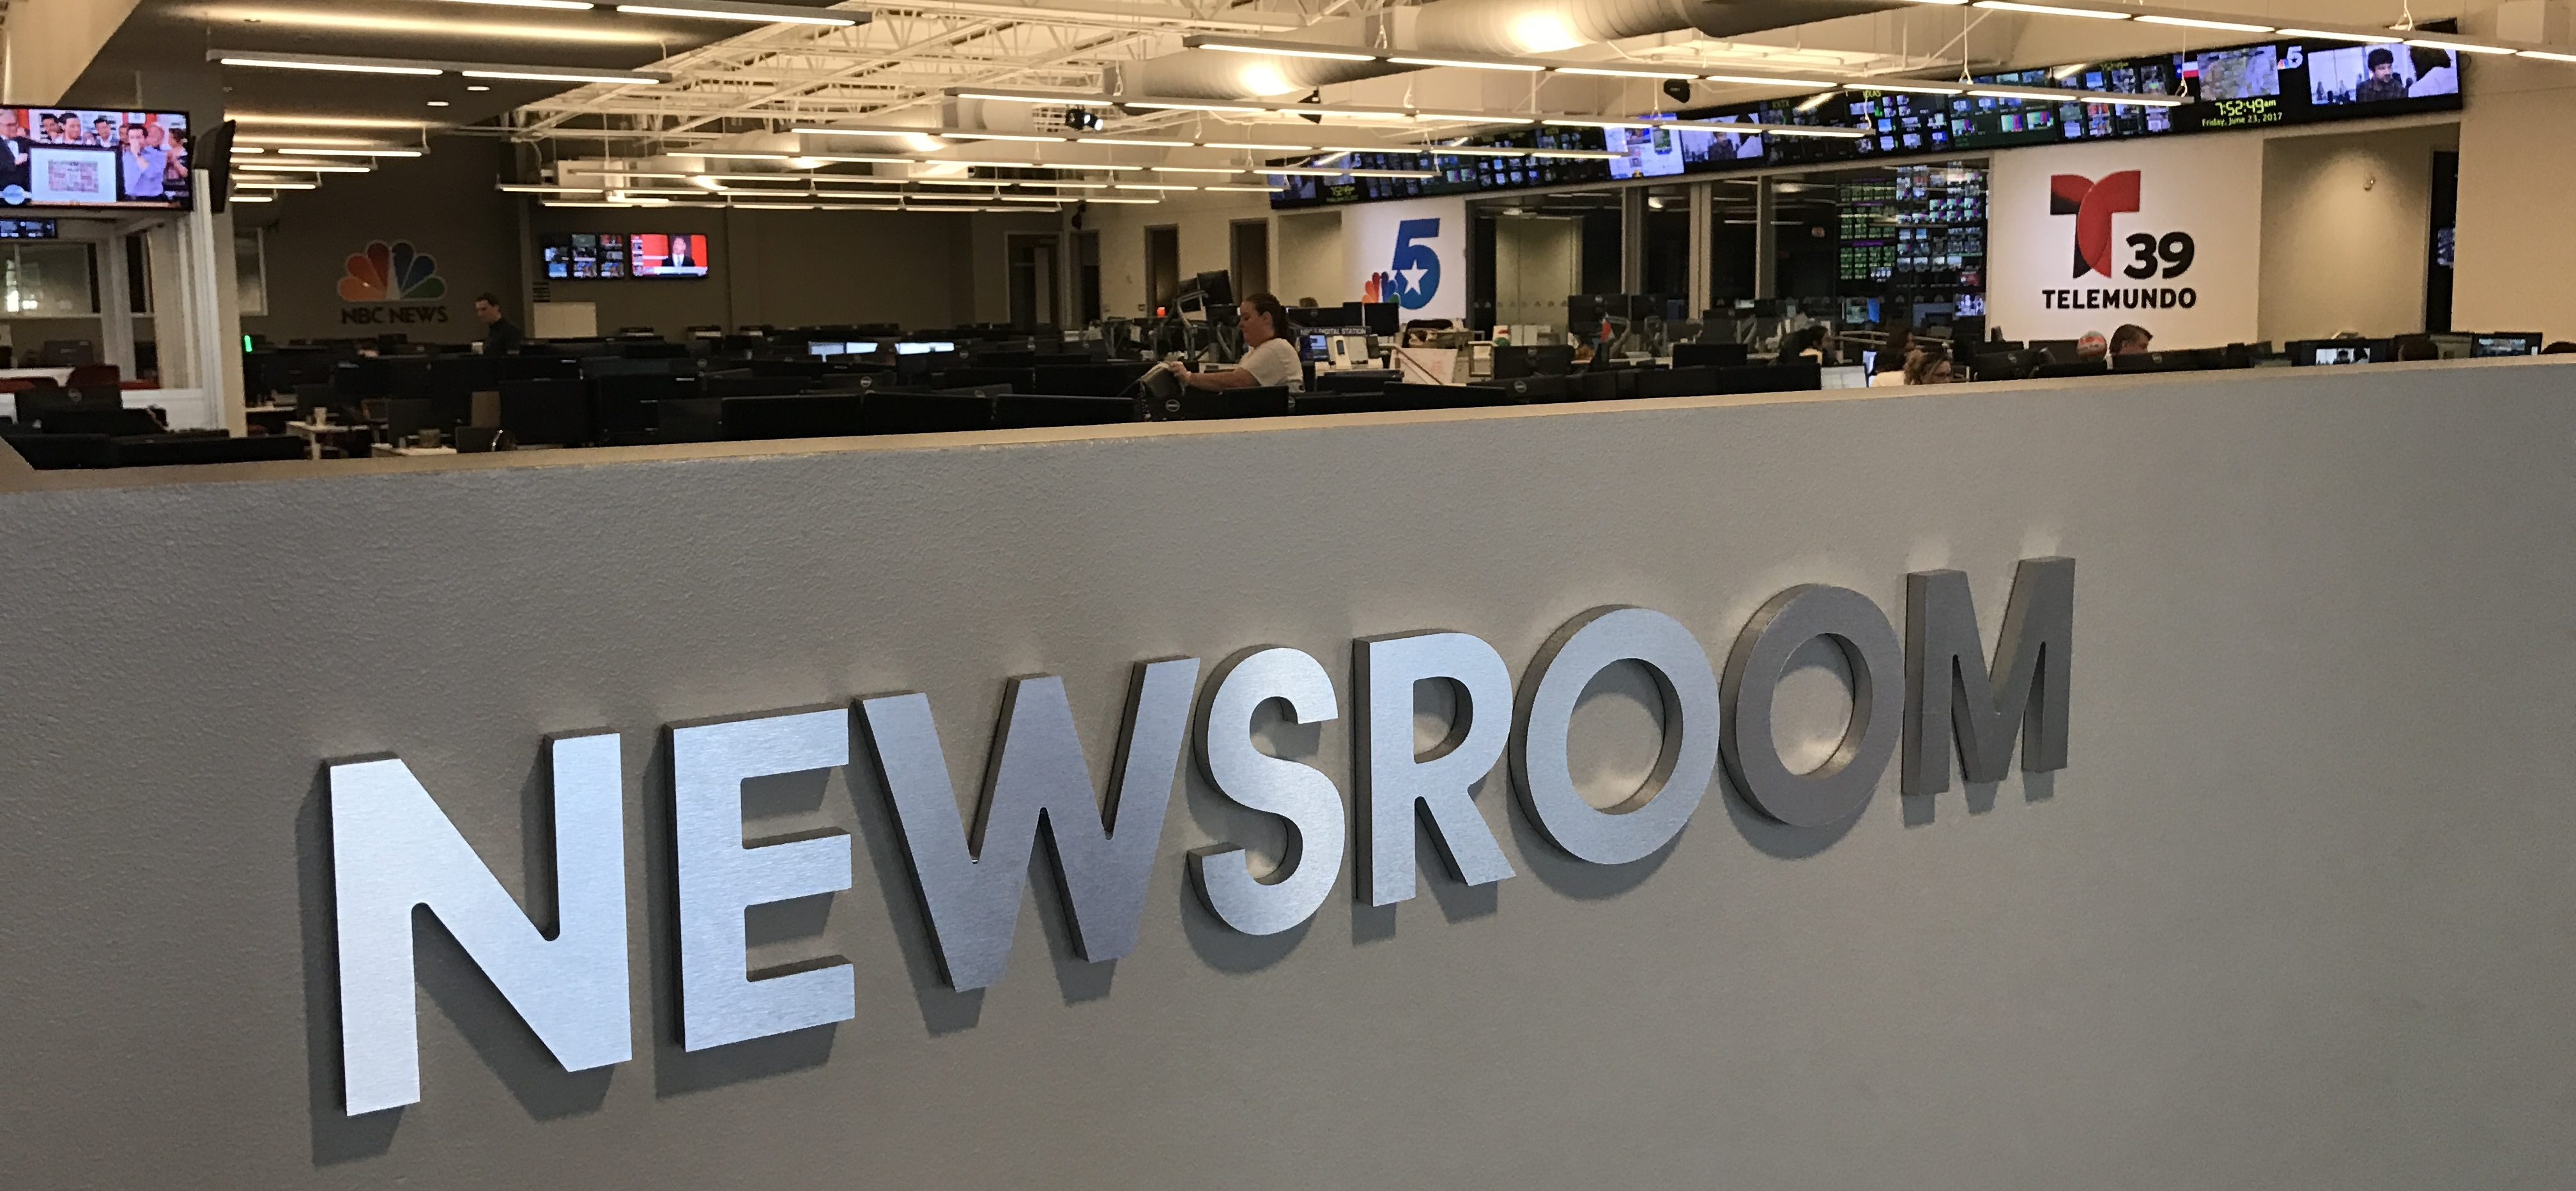 TV Newsroom to Classroom: What One Prof Learned at His ...